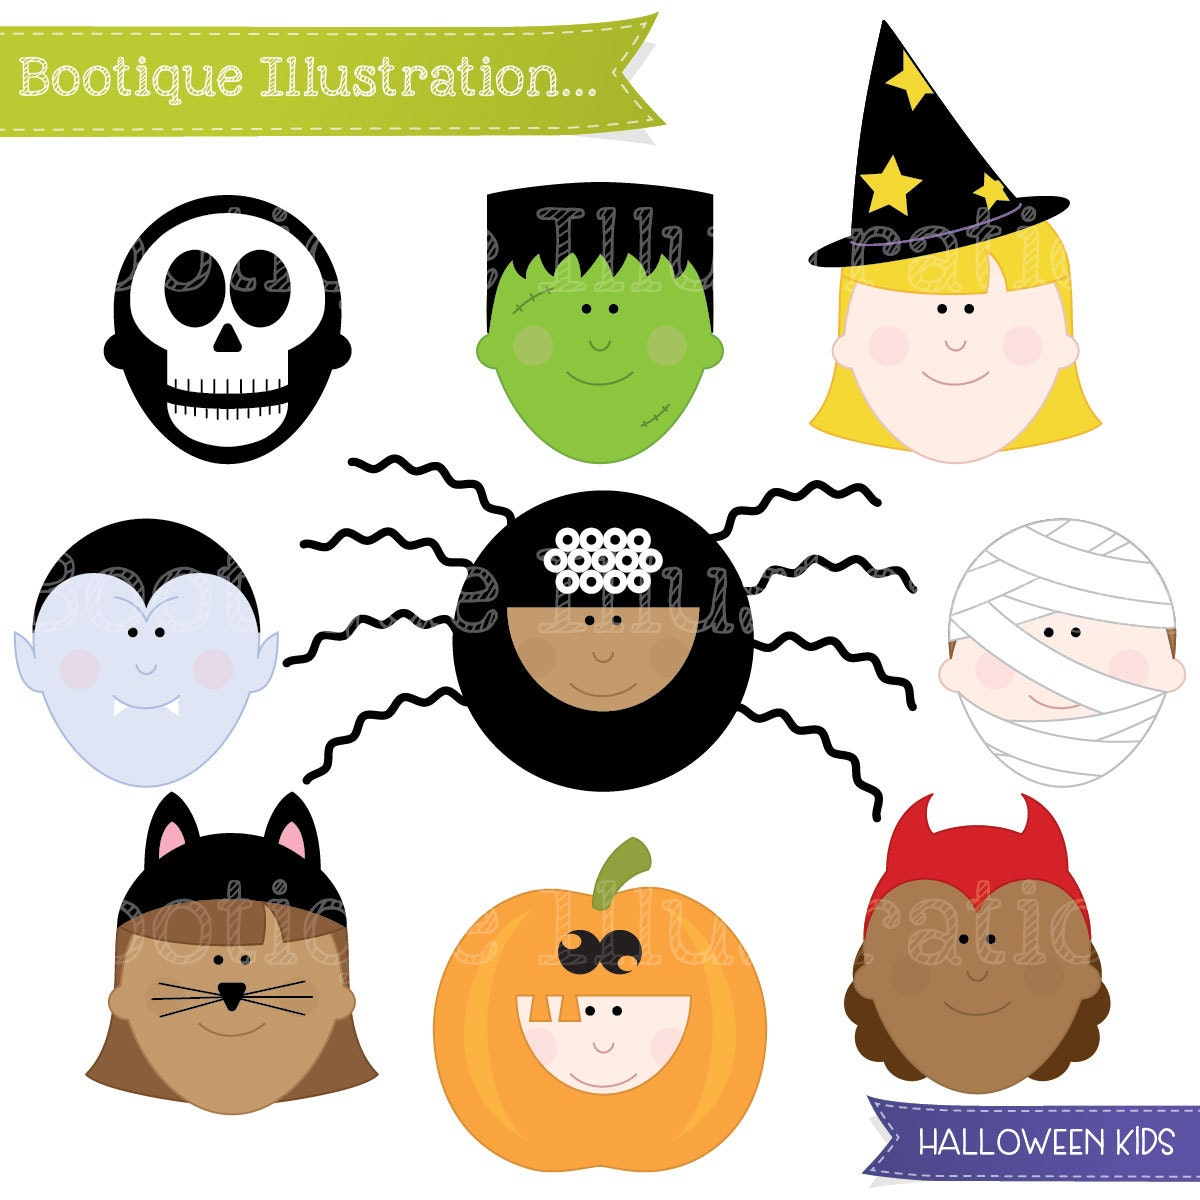 halloween clipart halloween kids clipart halloween clip art rh bootiqueillustrationclipart wordpress com Trick or Treat Clip Art Bat Clip Art